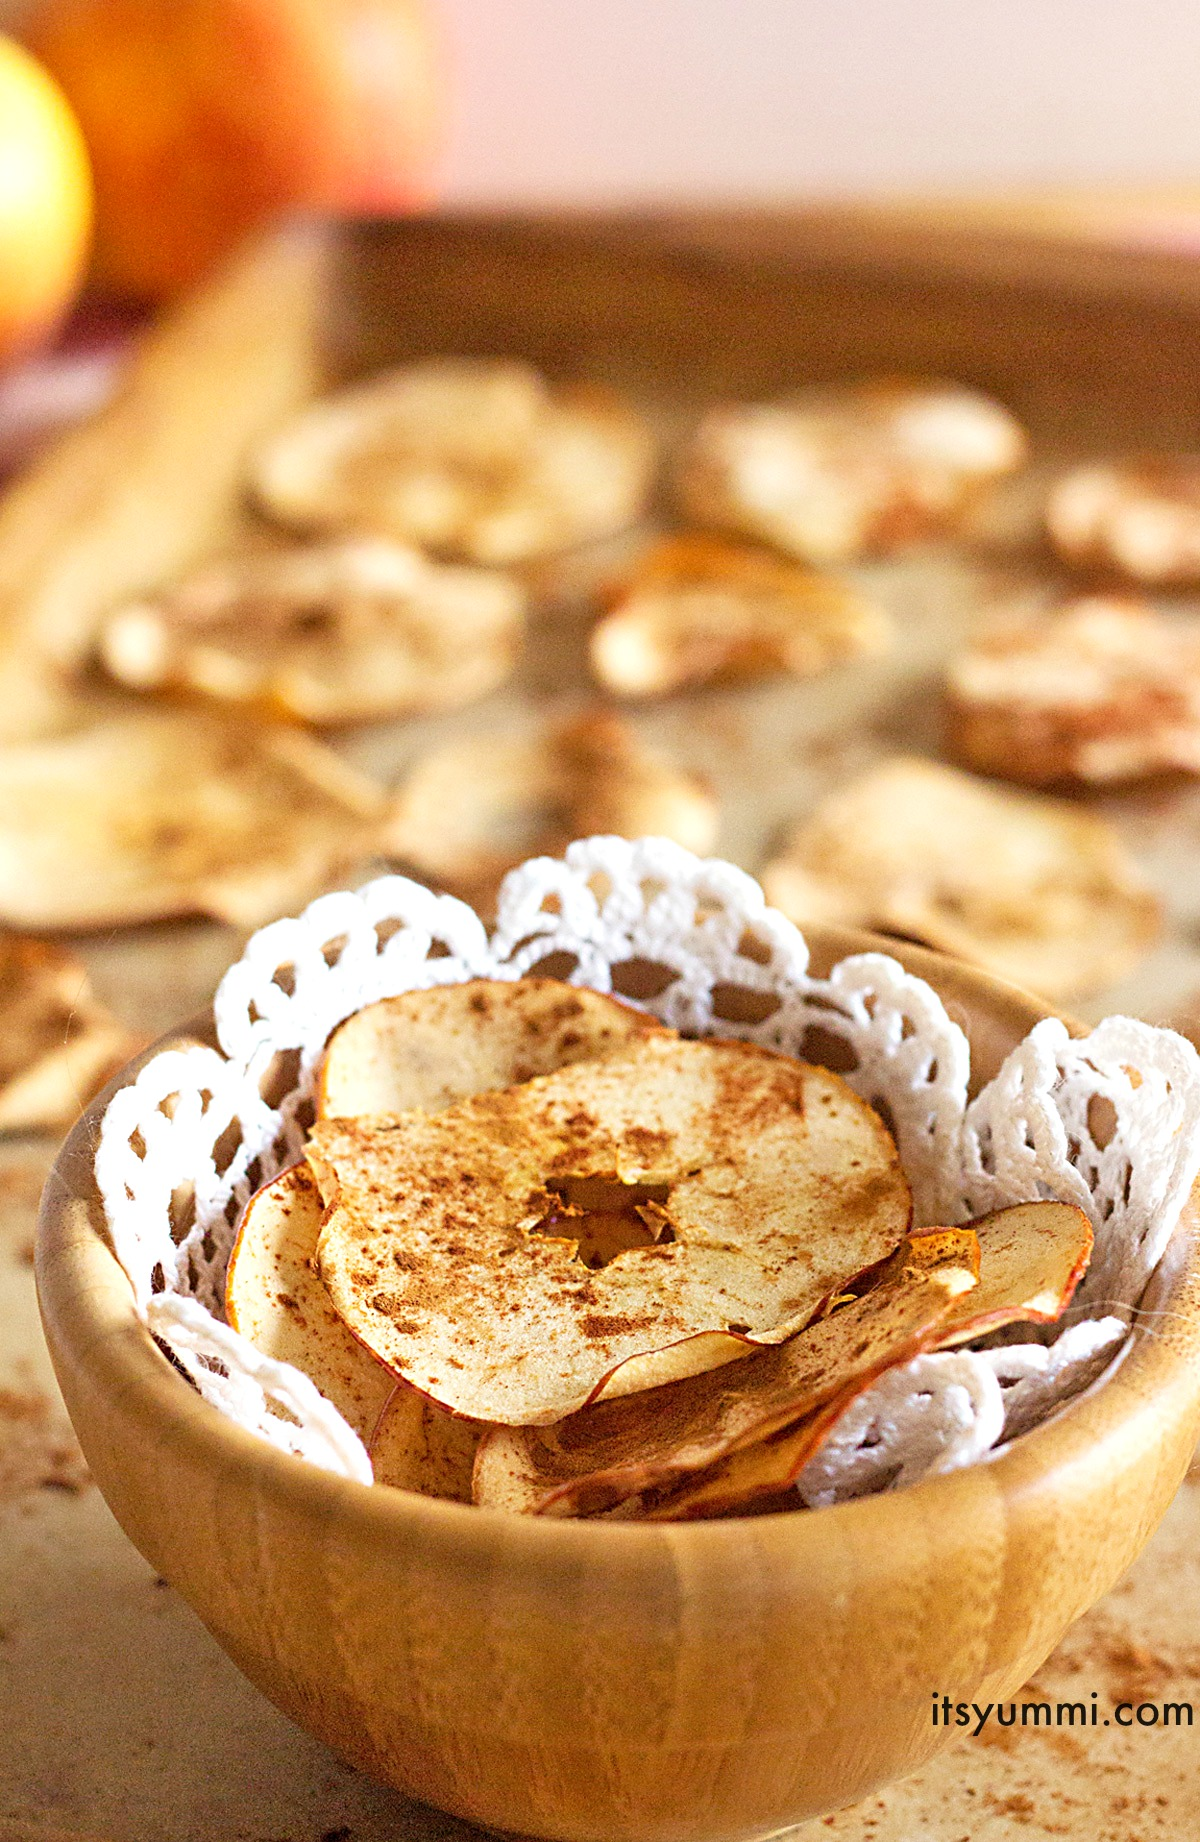 This baked cinnamon apple chips recipe is one of the tastiest and healthy snacks around. Thin slices of apples are dusted with cinnamon and crisply baked into a snack that you can feel good about.  Pack 'em in the lunch box and snack to your heart's content!